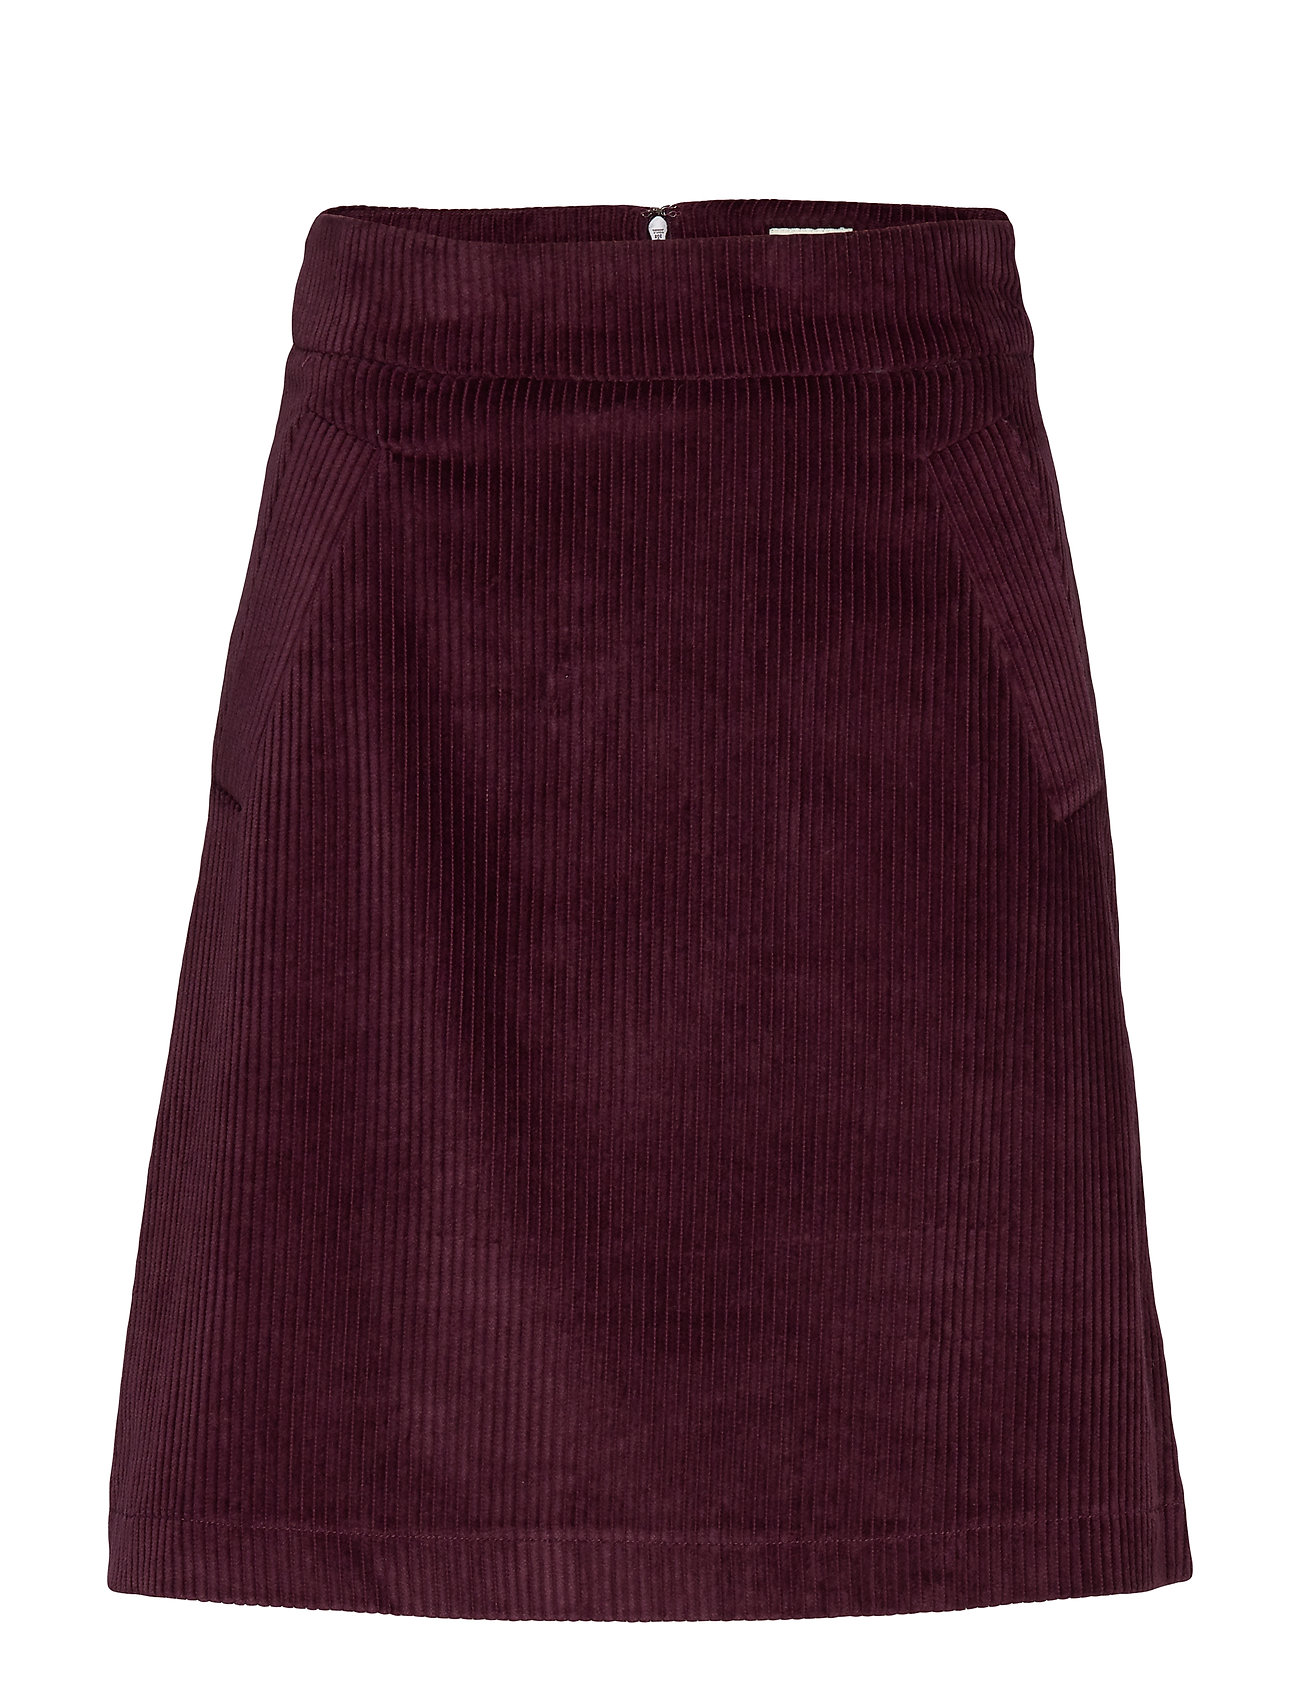 Twist & Tango Angela Cord Skirt - DEEP PURPLE